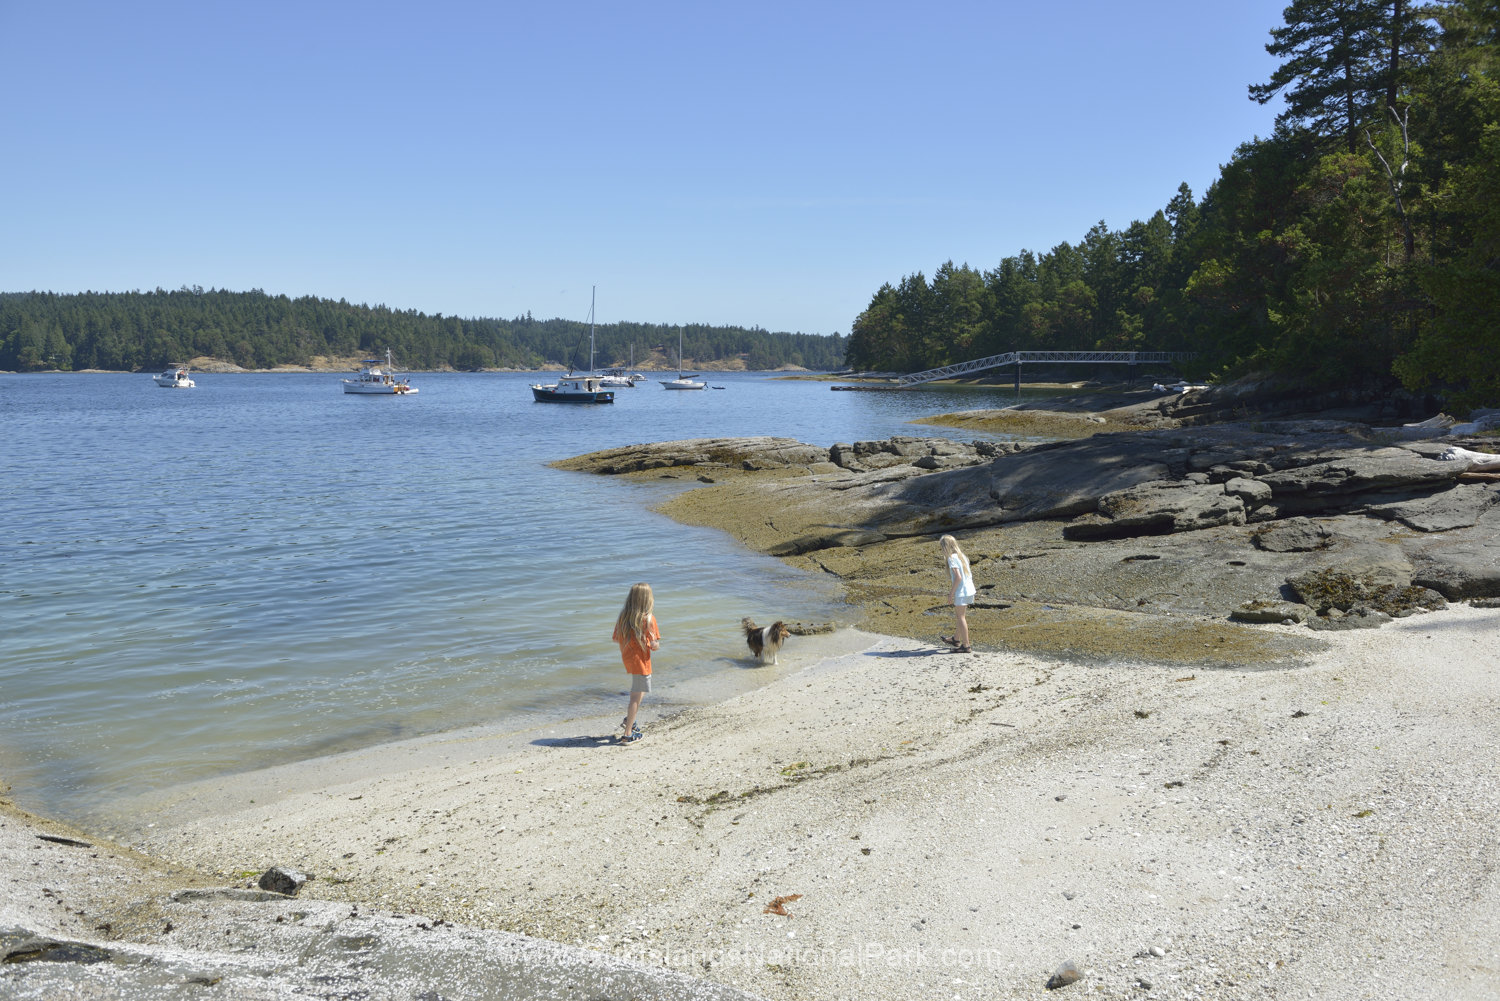 Kids walking on a sandy beach, Russell Island, British Columbia, Canada